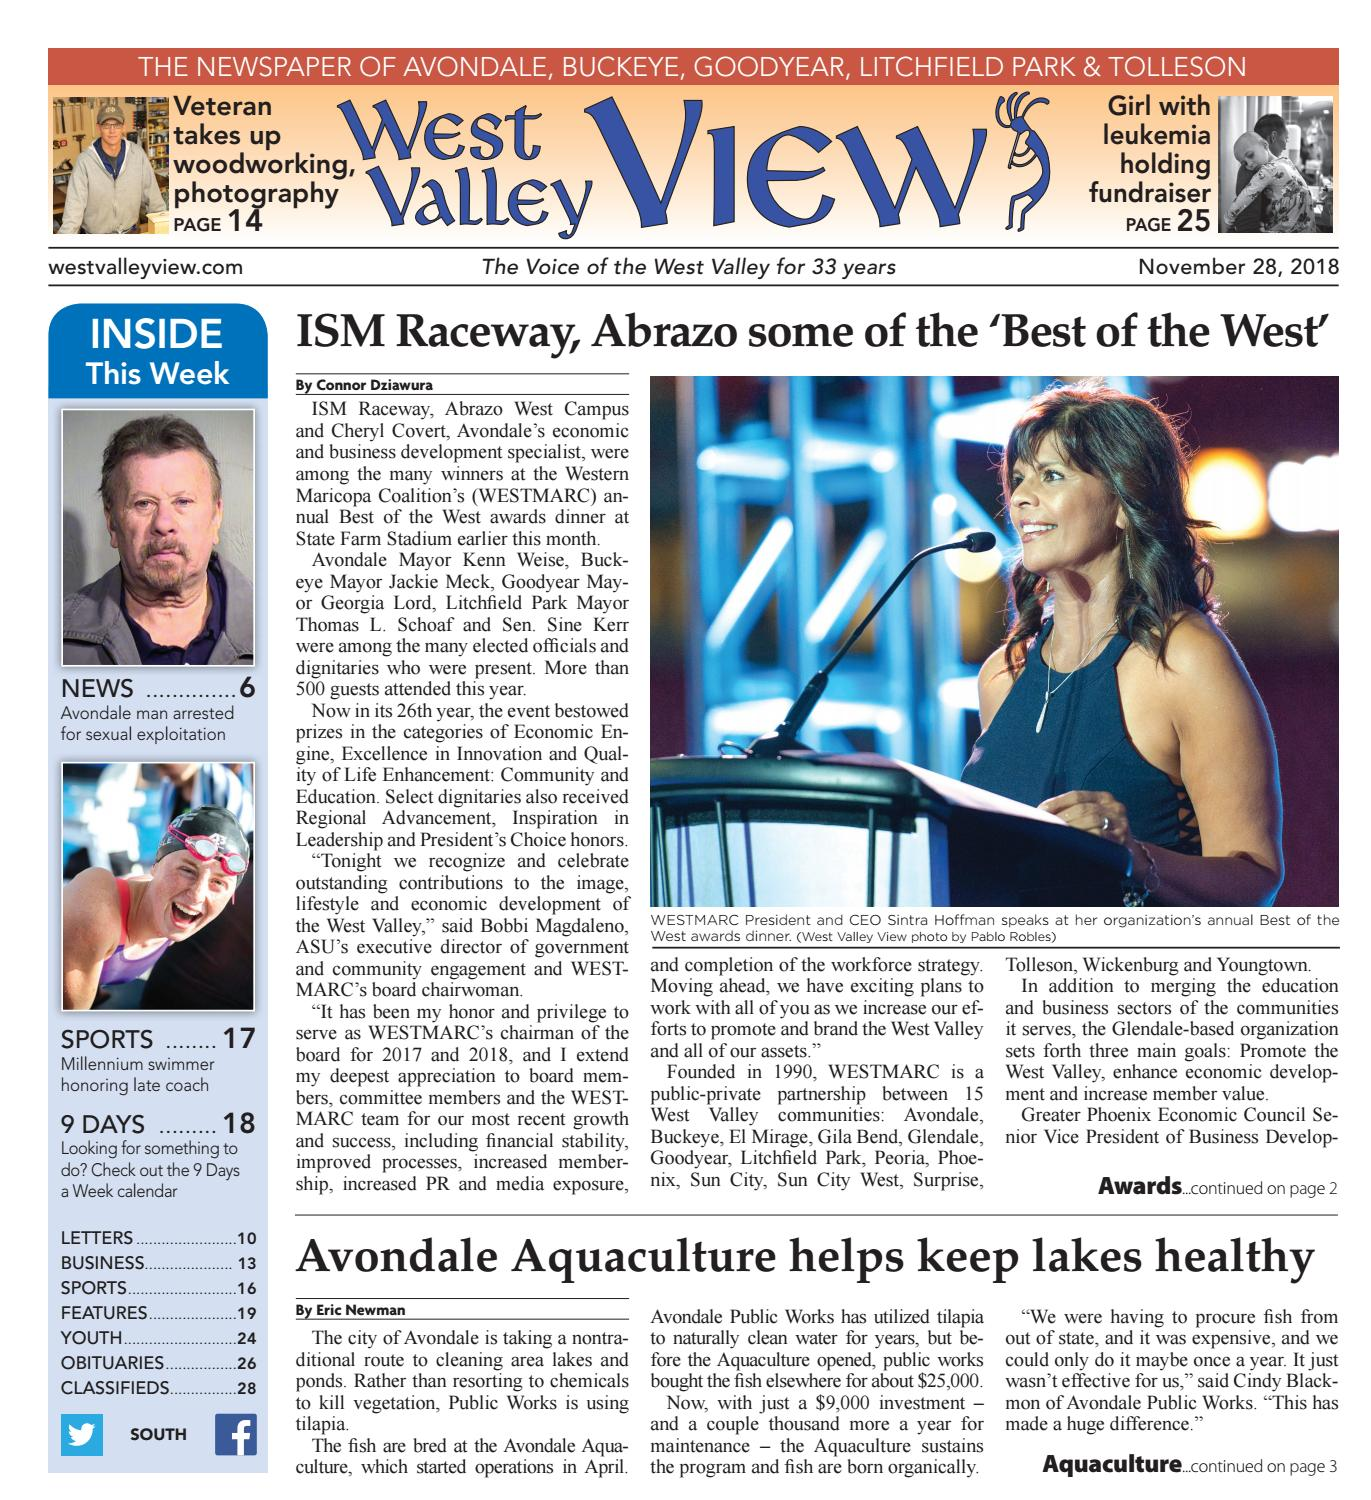 West Valley View: South November 28, 2018 by Times Media